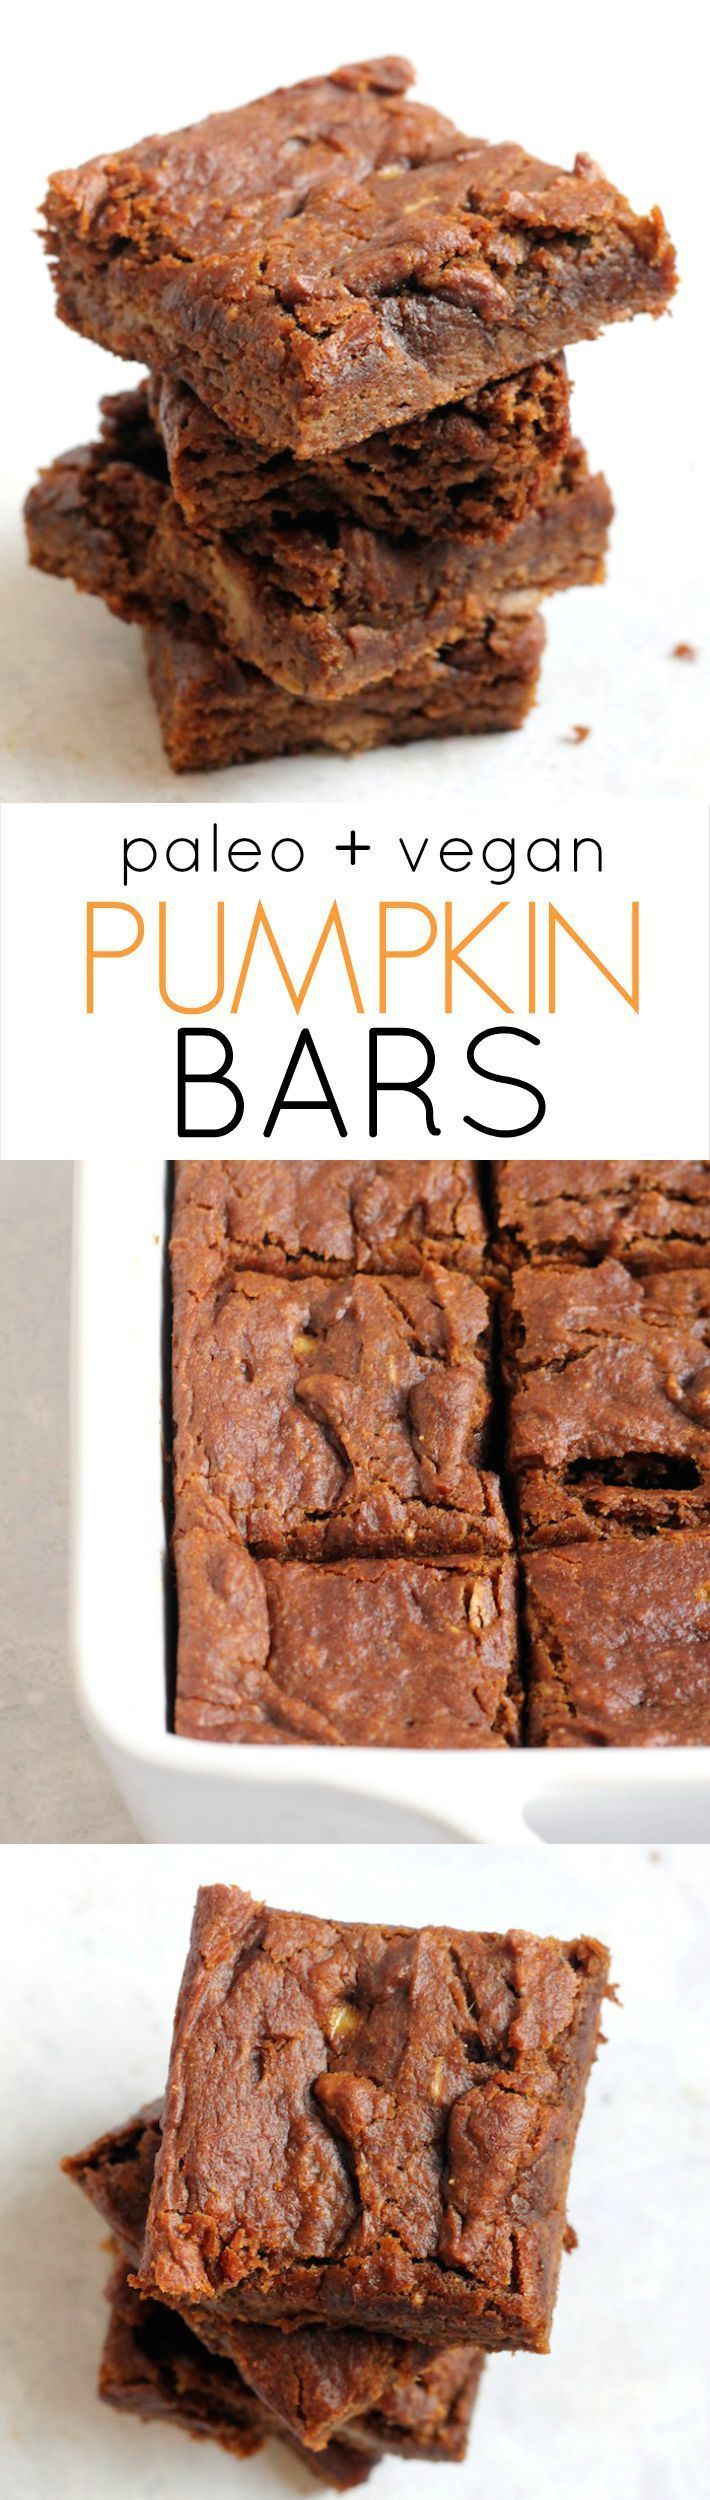 Paleo Pumpkin Bars | Recipe | Pumpkin Bars, Pumpkins and Vegans